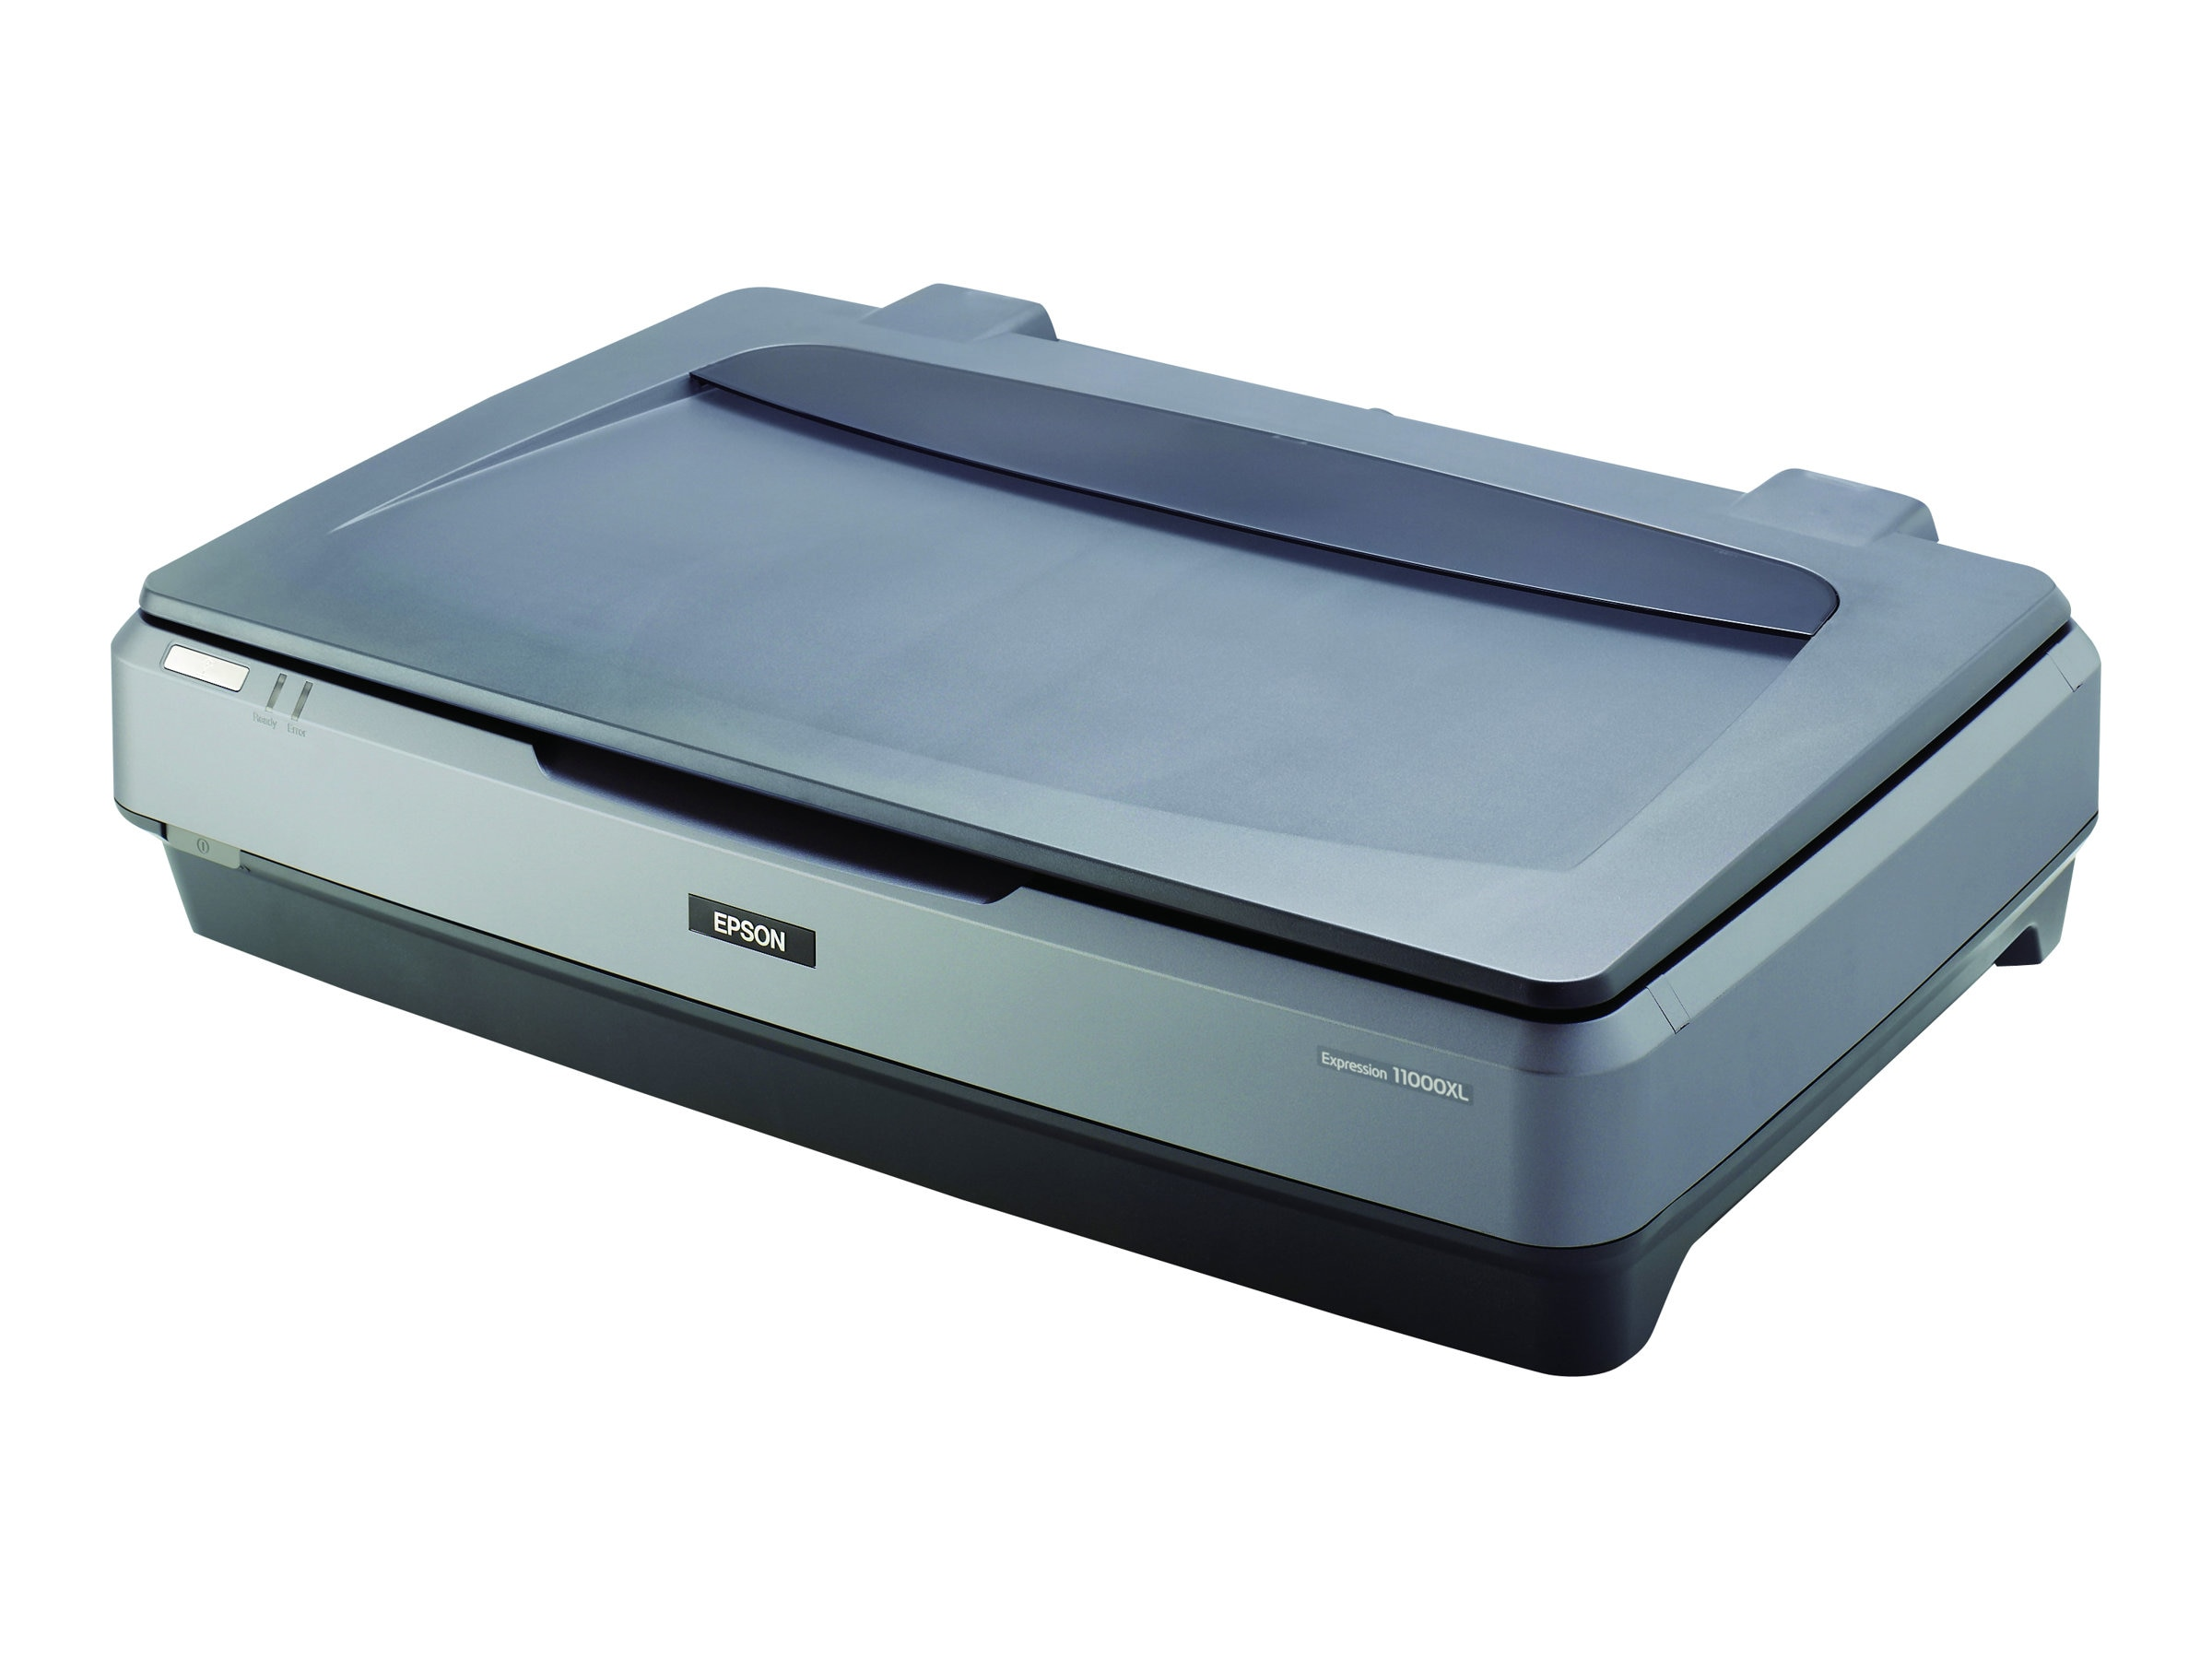 Epson Expression 11000XL Photo Scanner, E11000XL-PH, 15330176, Scanners